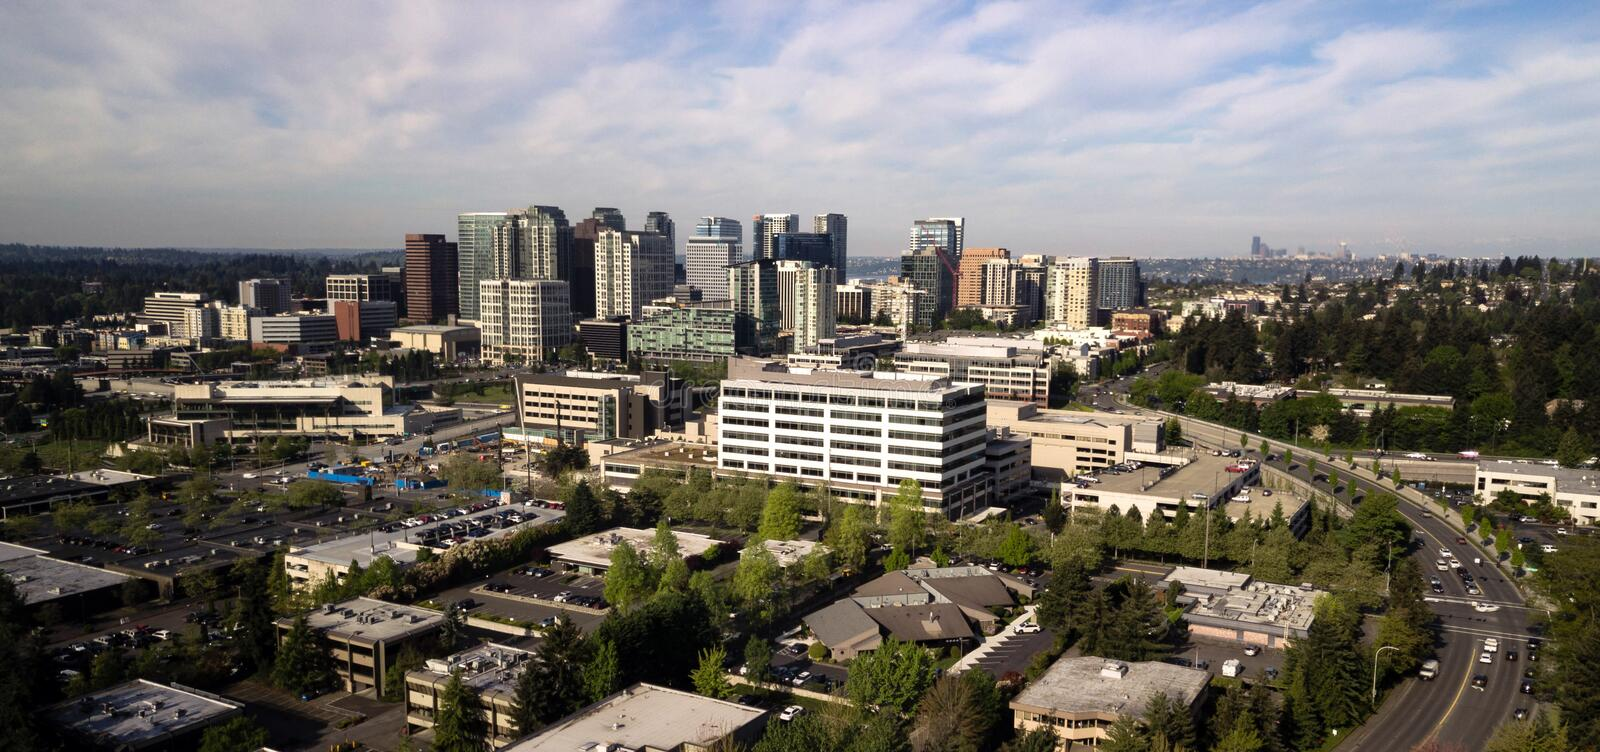 Hoch über dem Schauen hinunter Vogelperspektive Bellevue Washington City Sky stockfoto